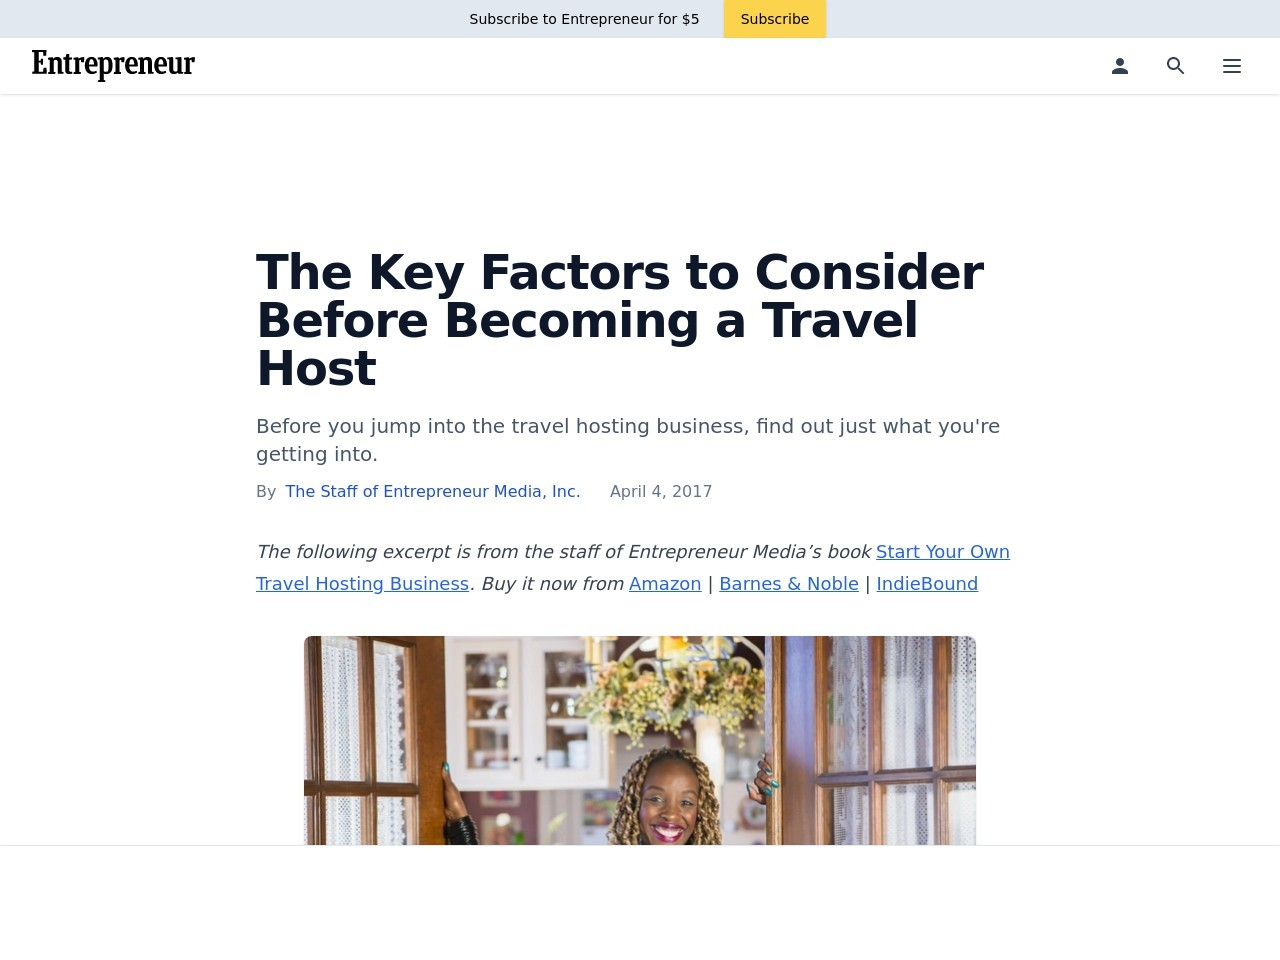 The Key Factors to Consider Before Becoming a Travel Host